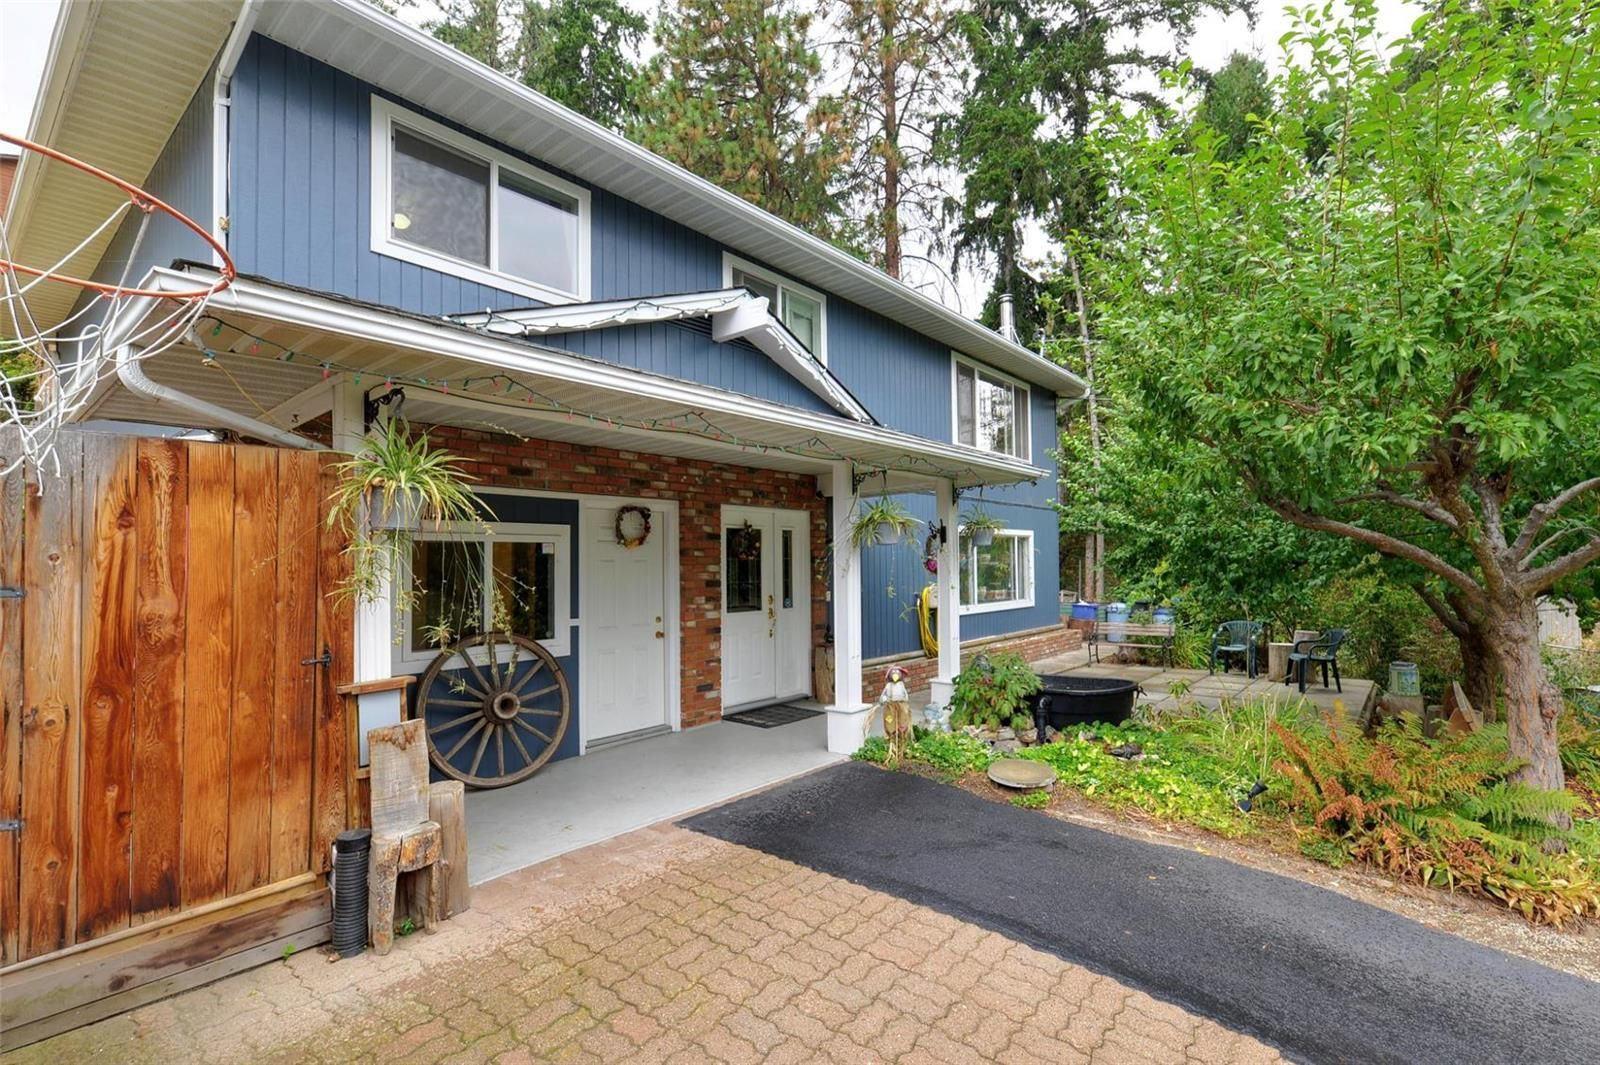 Main Photo: 3486 McTaggart Road, in West Kelowna: House for sale : MLS®# 10240521